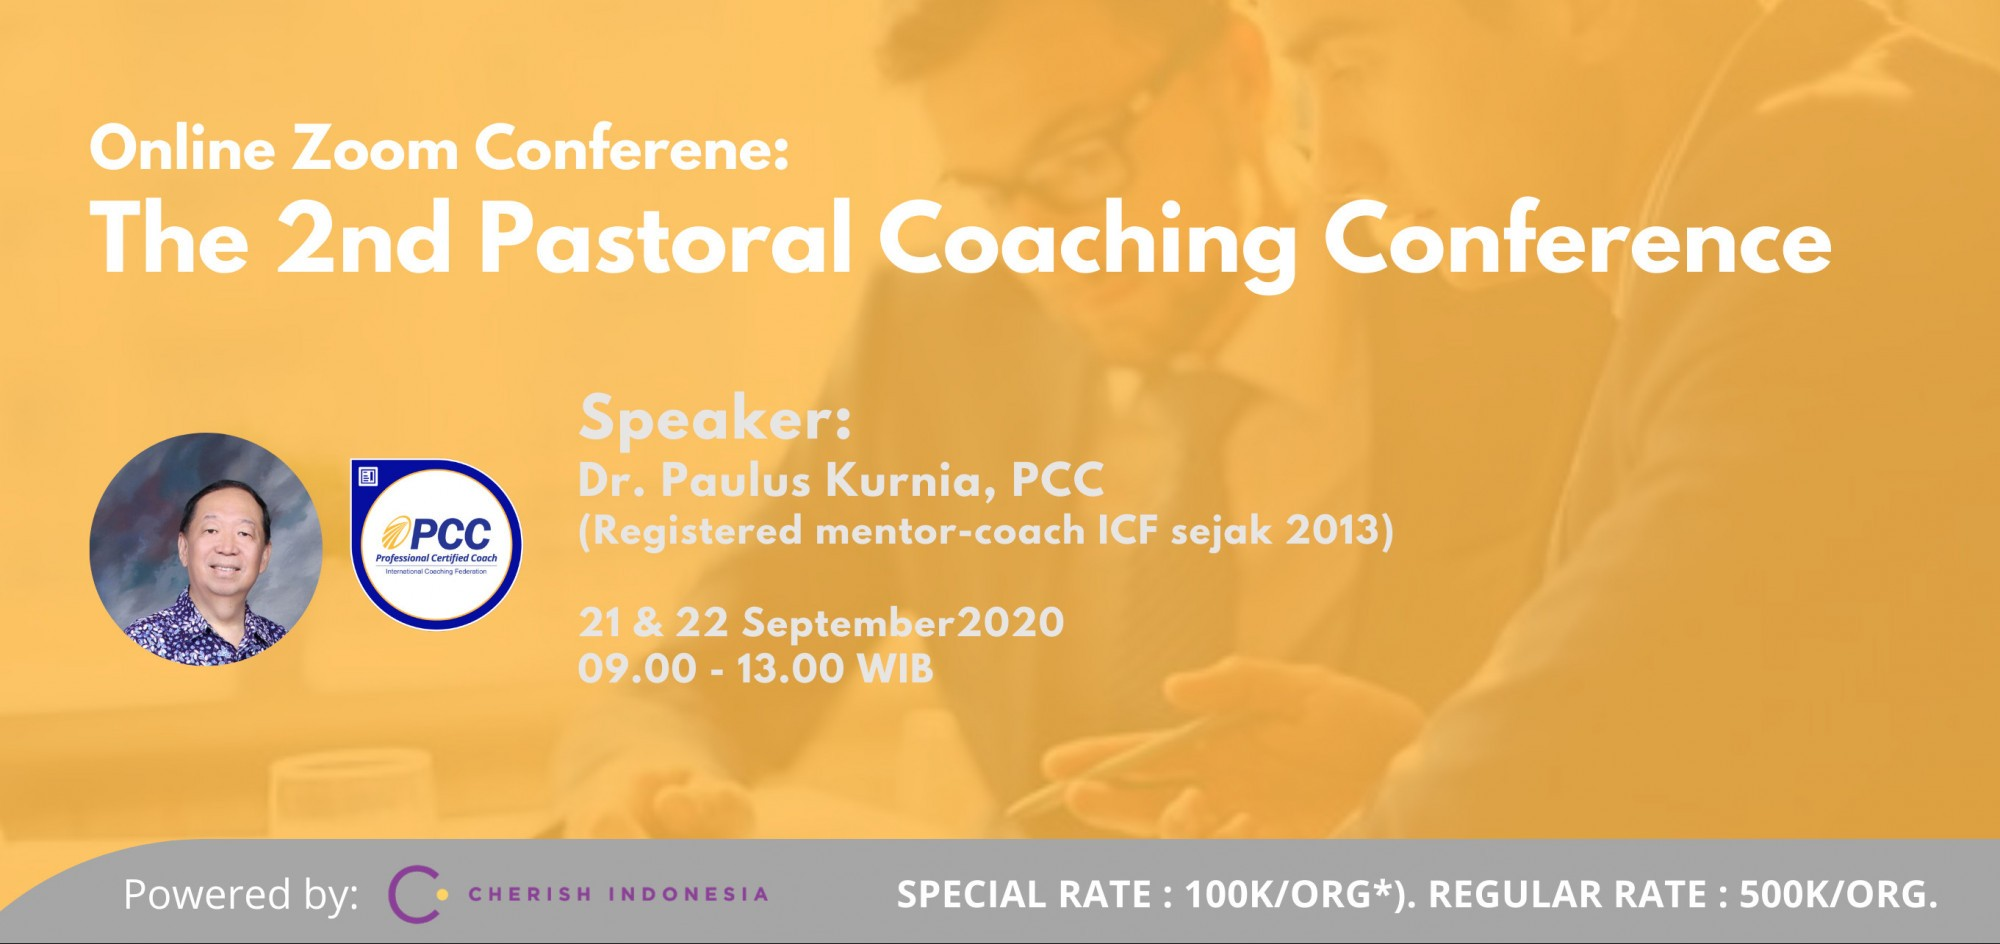 The 2nd Pastoral Coaching Conference